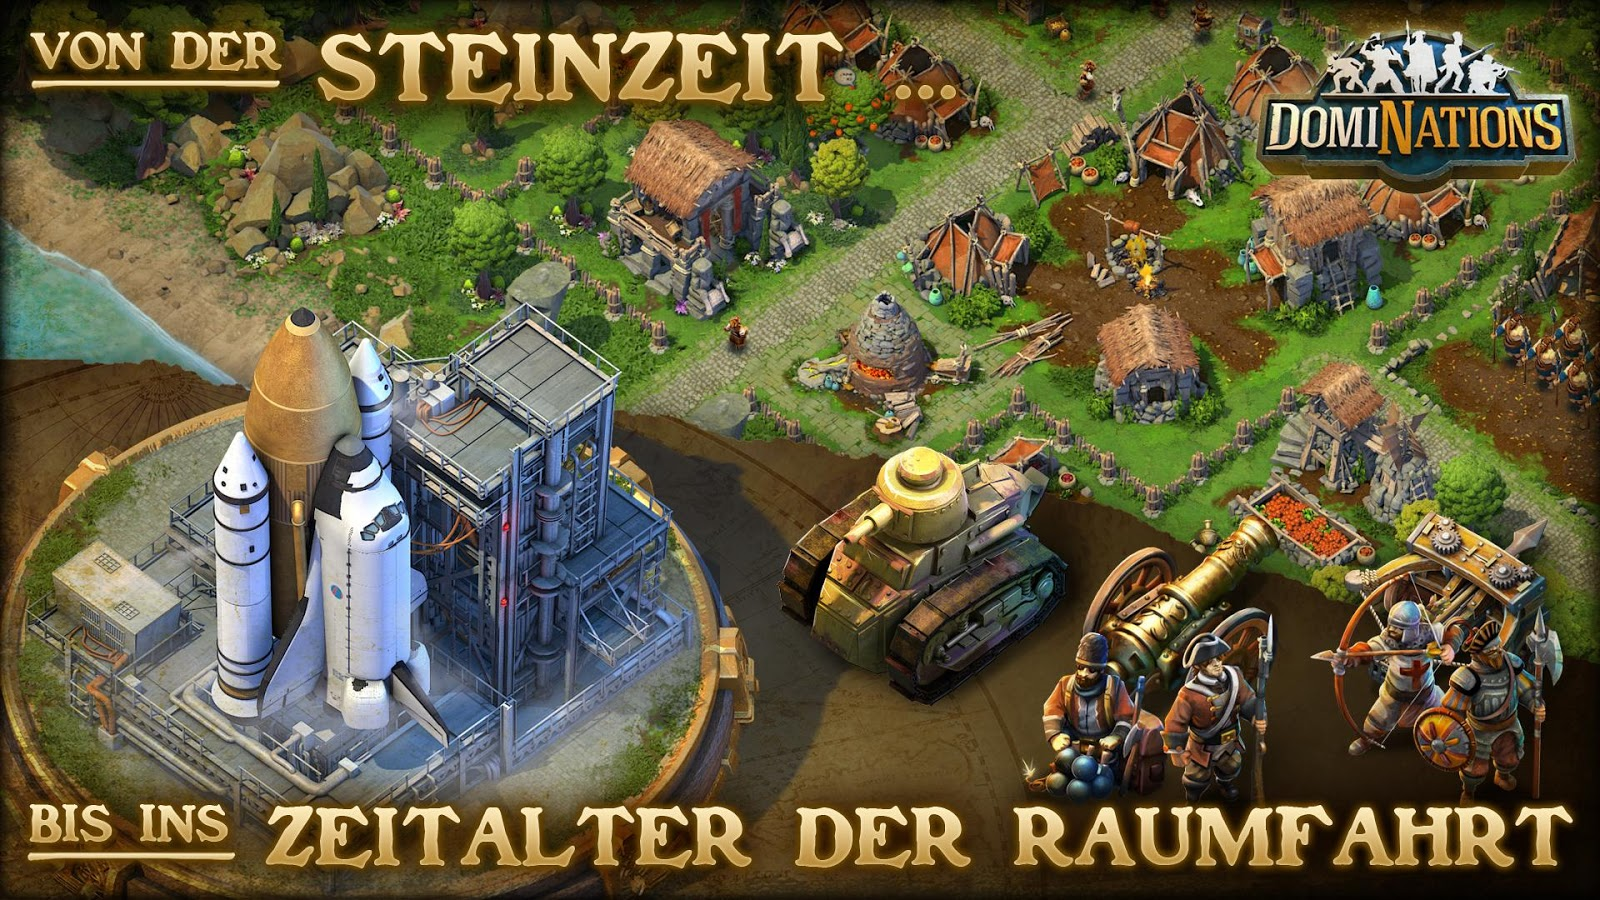 Screenshot zu DomiNations - (c) Nexon M